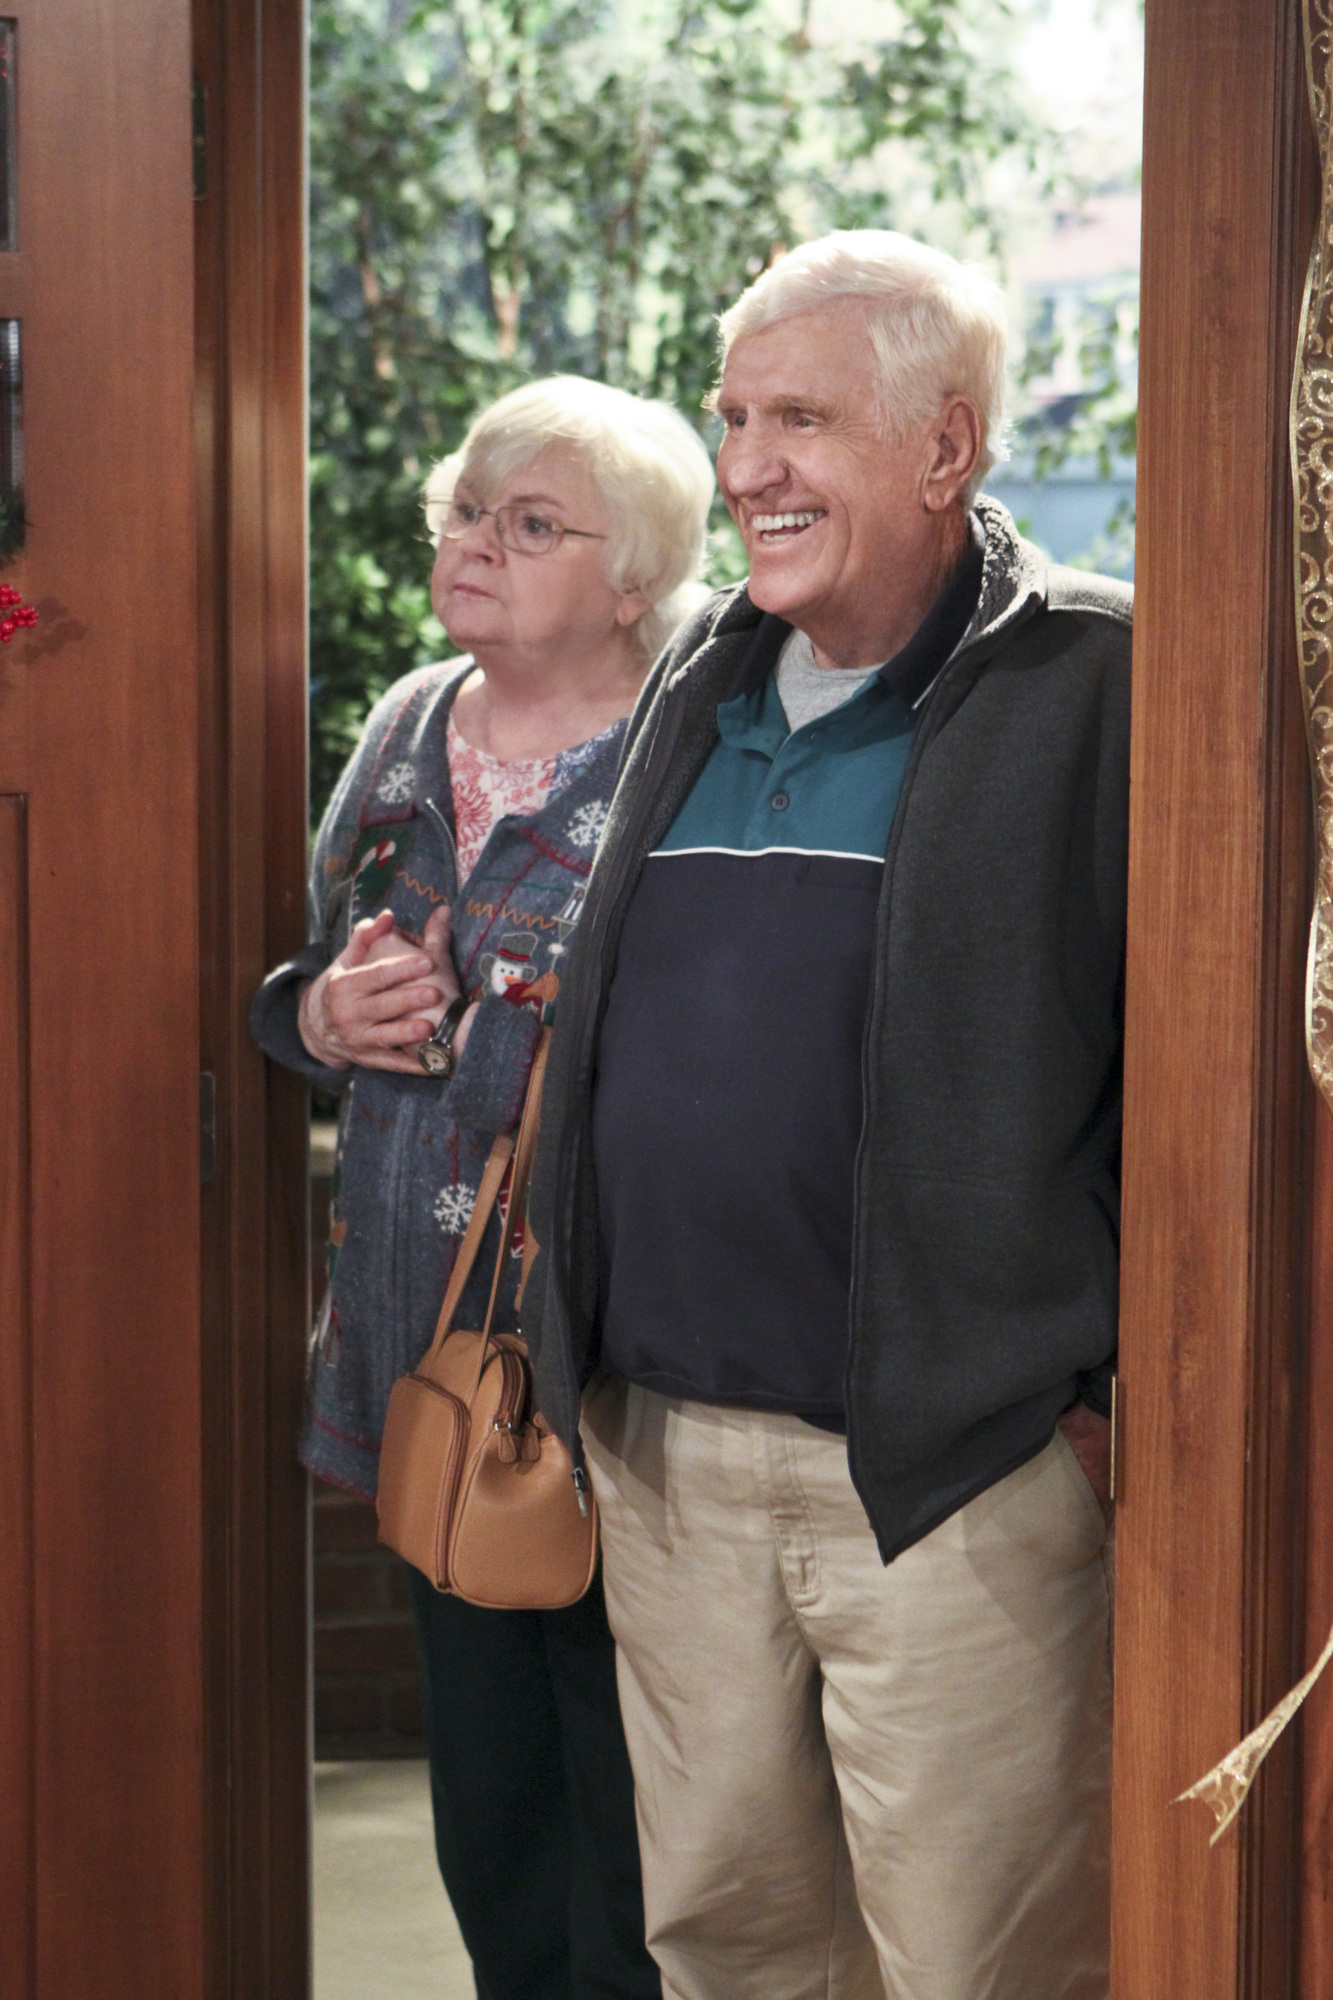 June Squibb and Jerry Van Dyke in The Millers (2013)